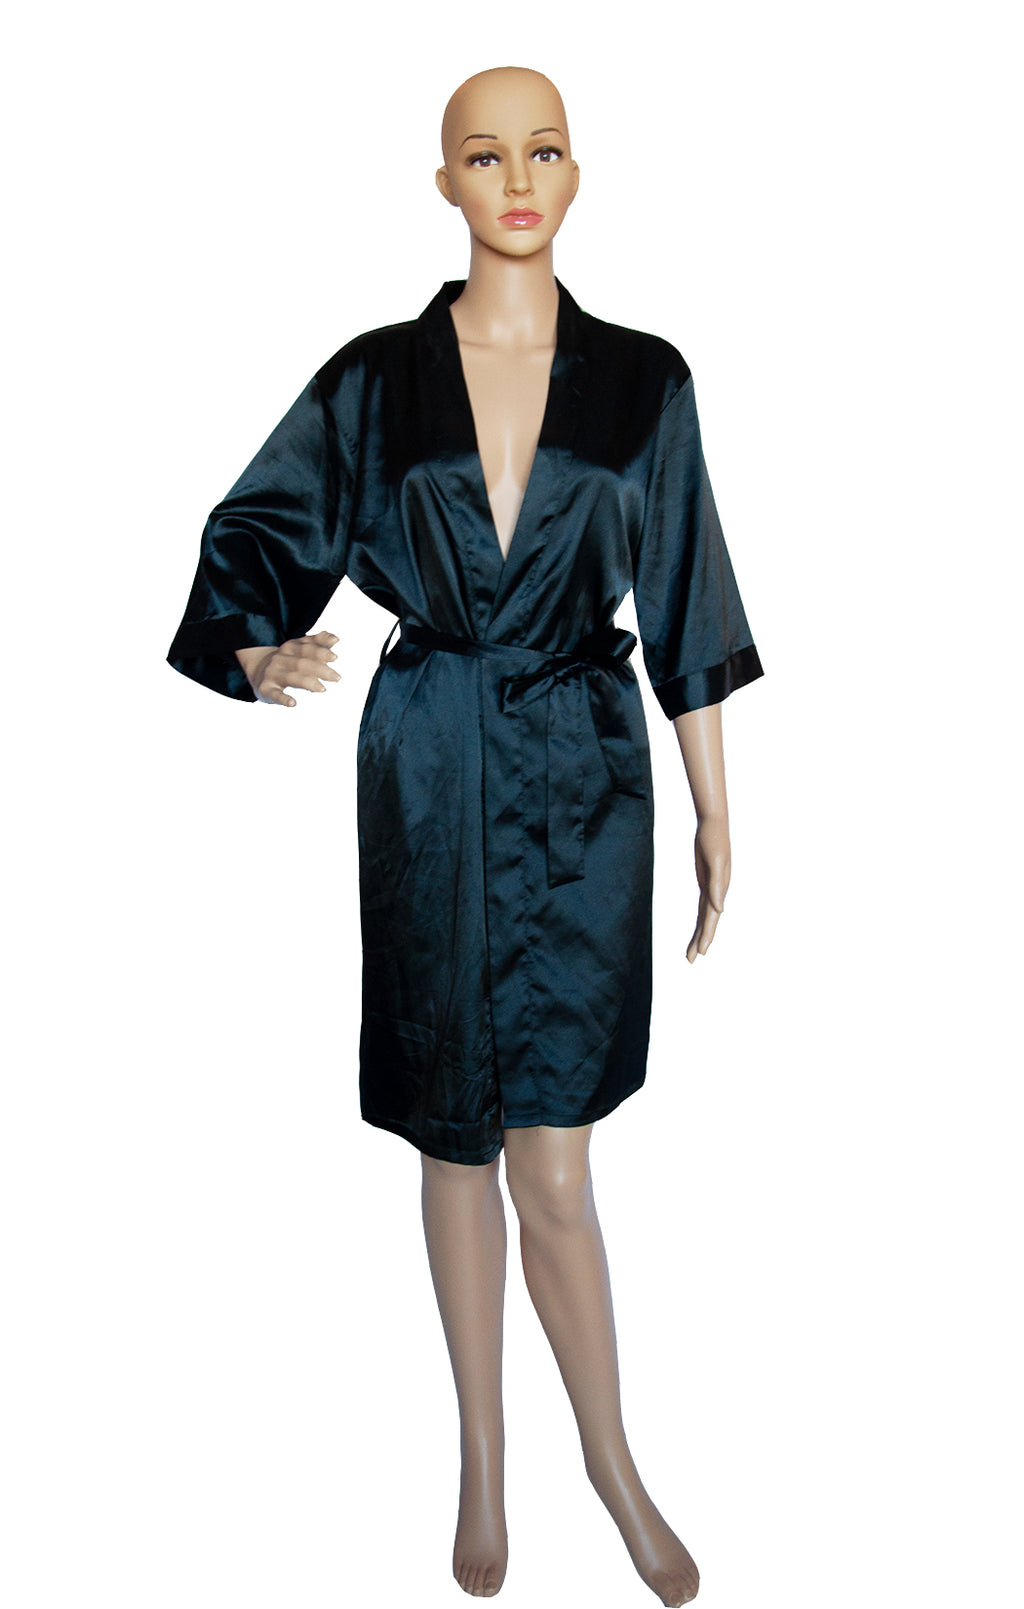 Front view of NO NAME Black Wrap Robe Size: No tags, fits like medium